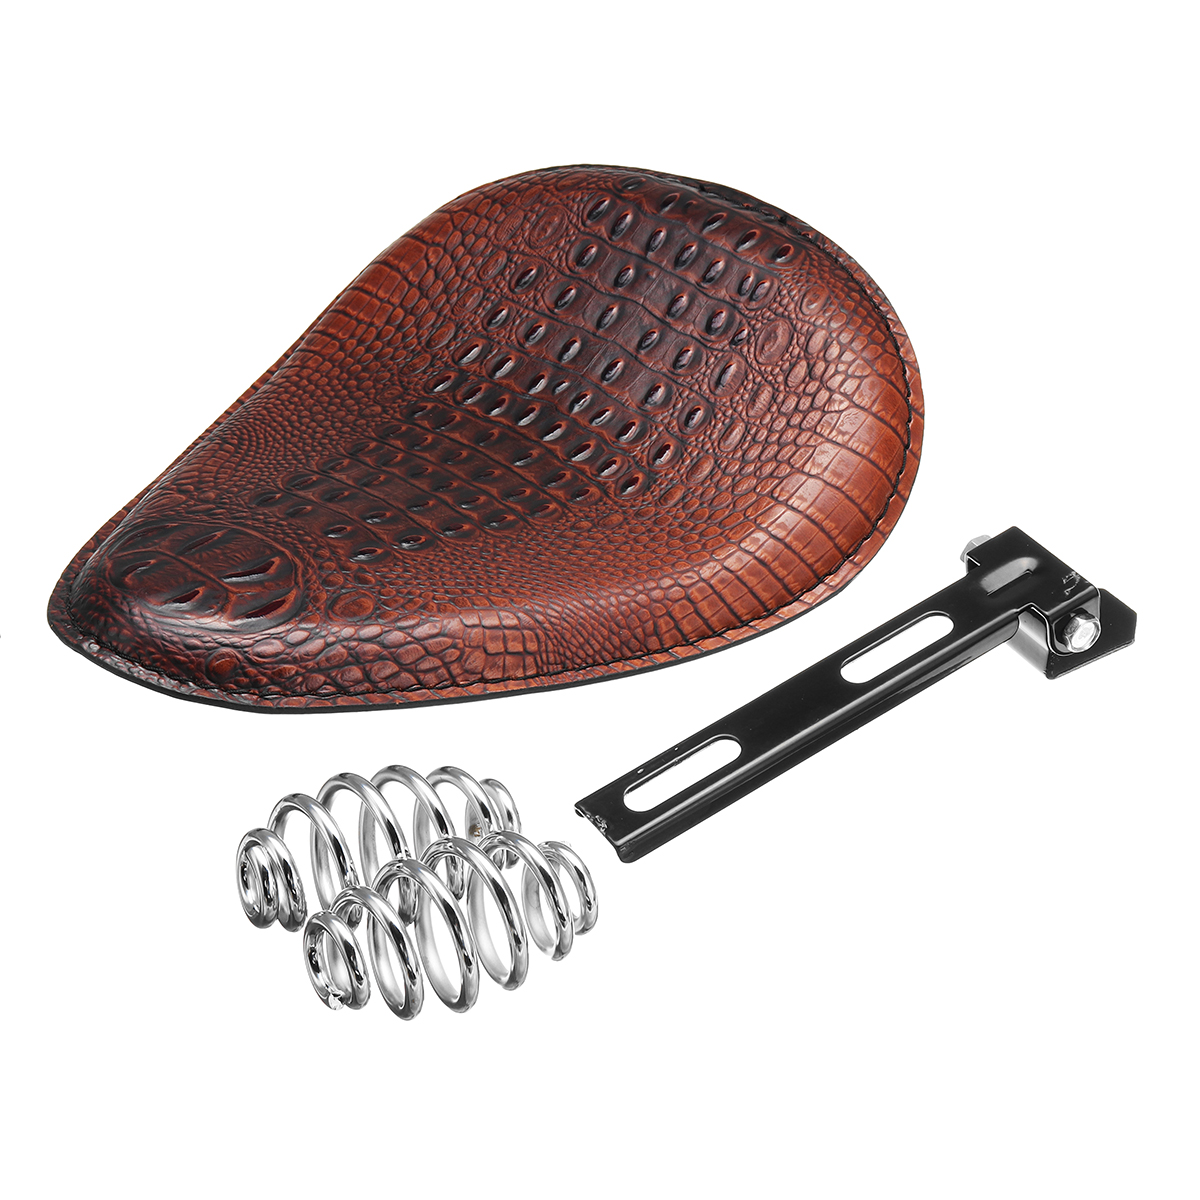 Brown Alligator Motorcycle Leather Solo Driver Seat For Harley Chopper Bobber